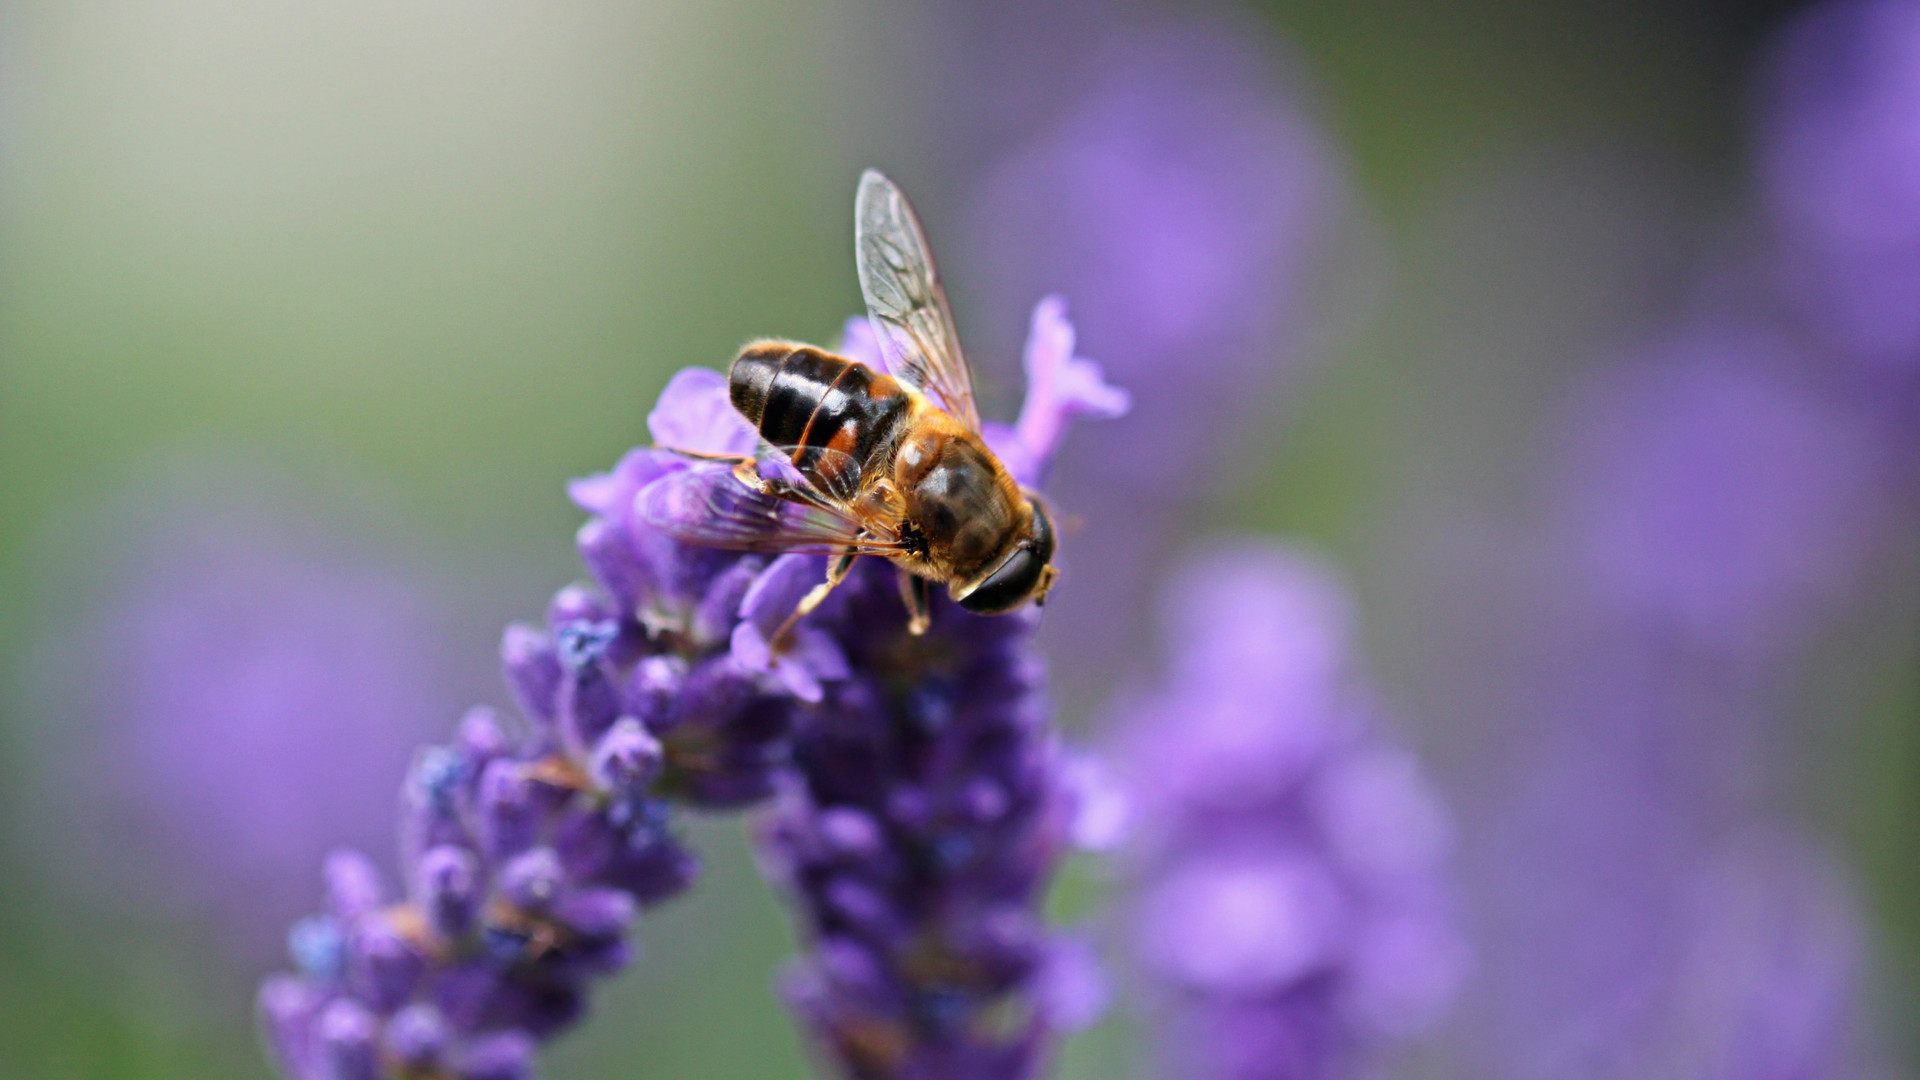 lavender-hoverfly-insect-flight-insect-1